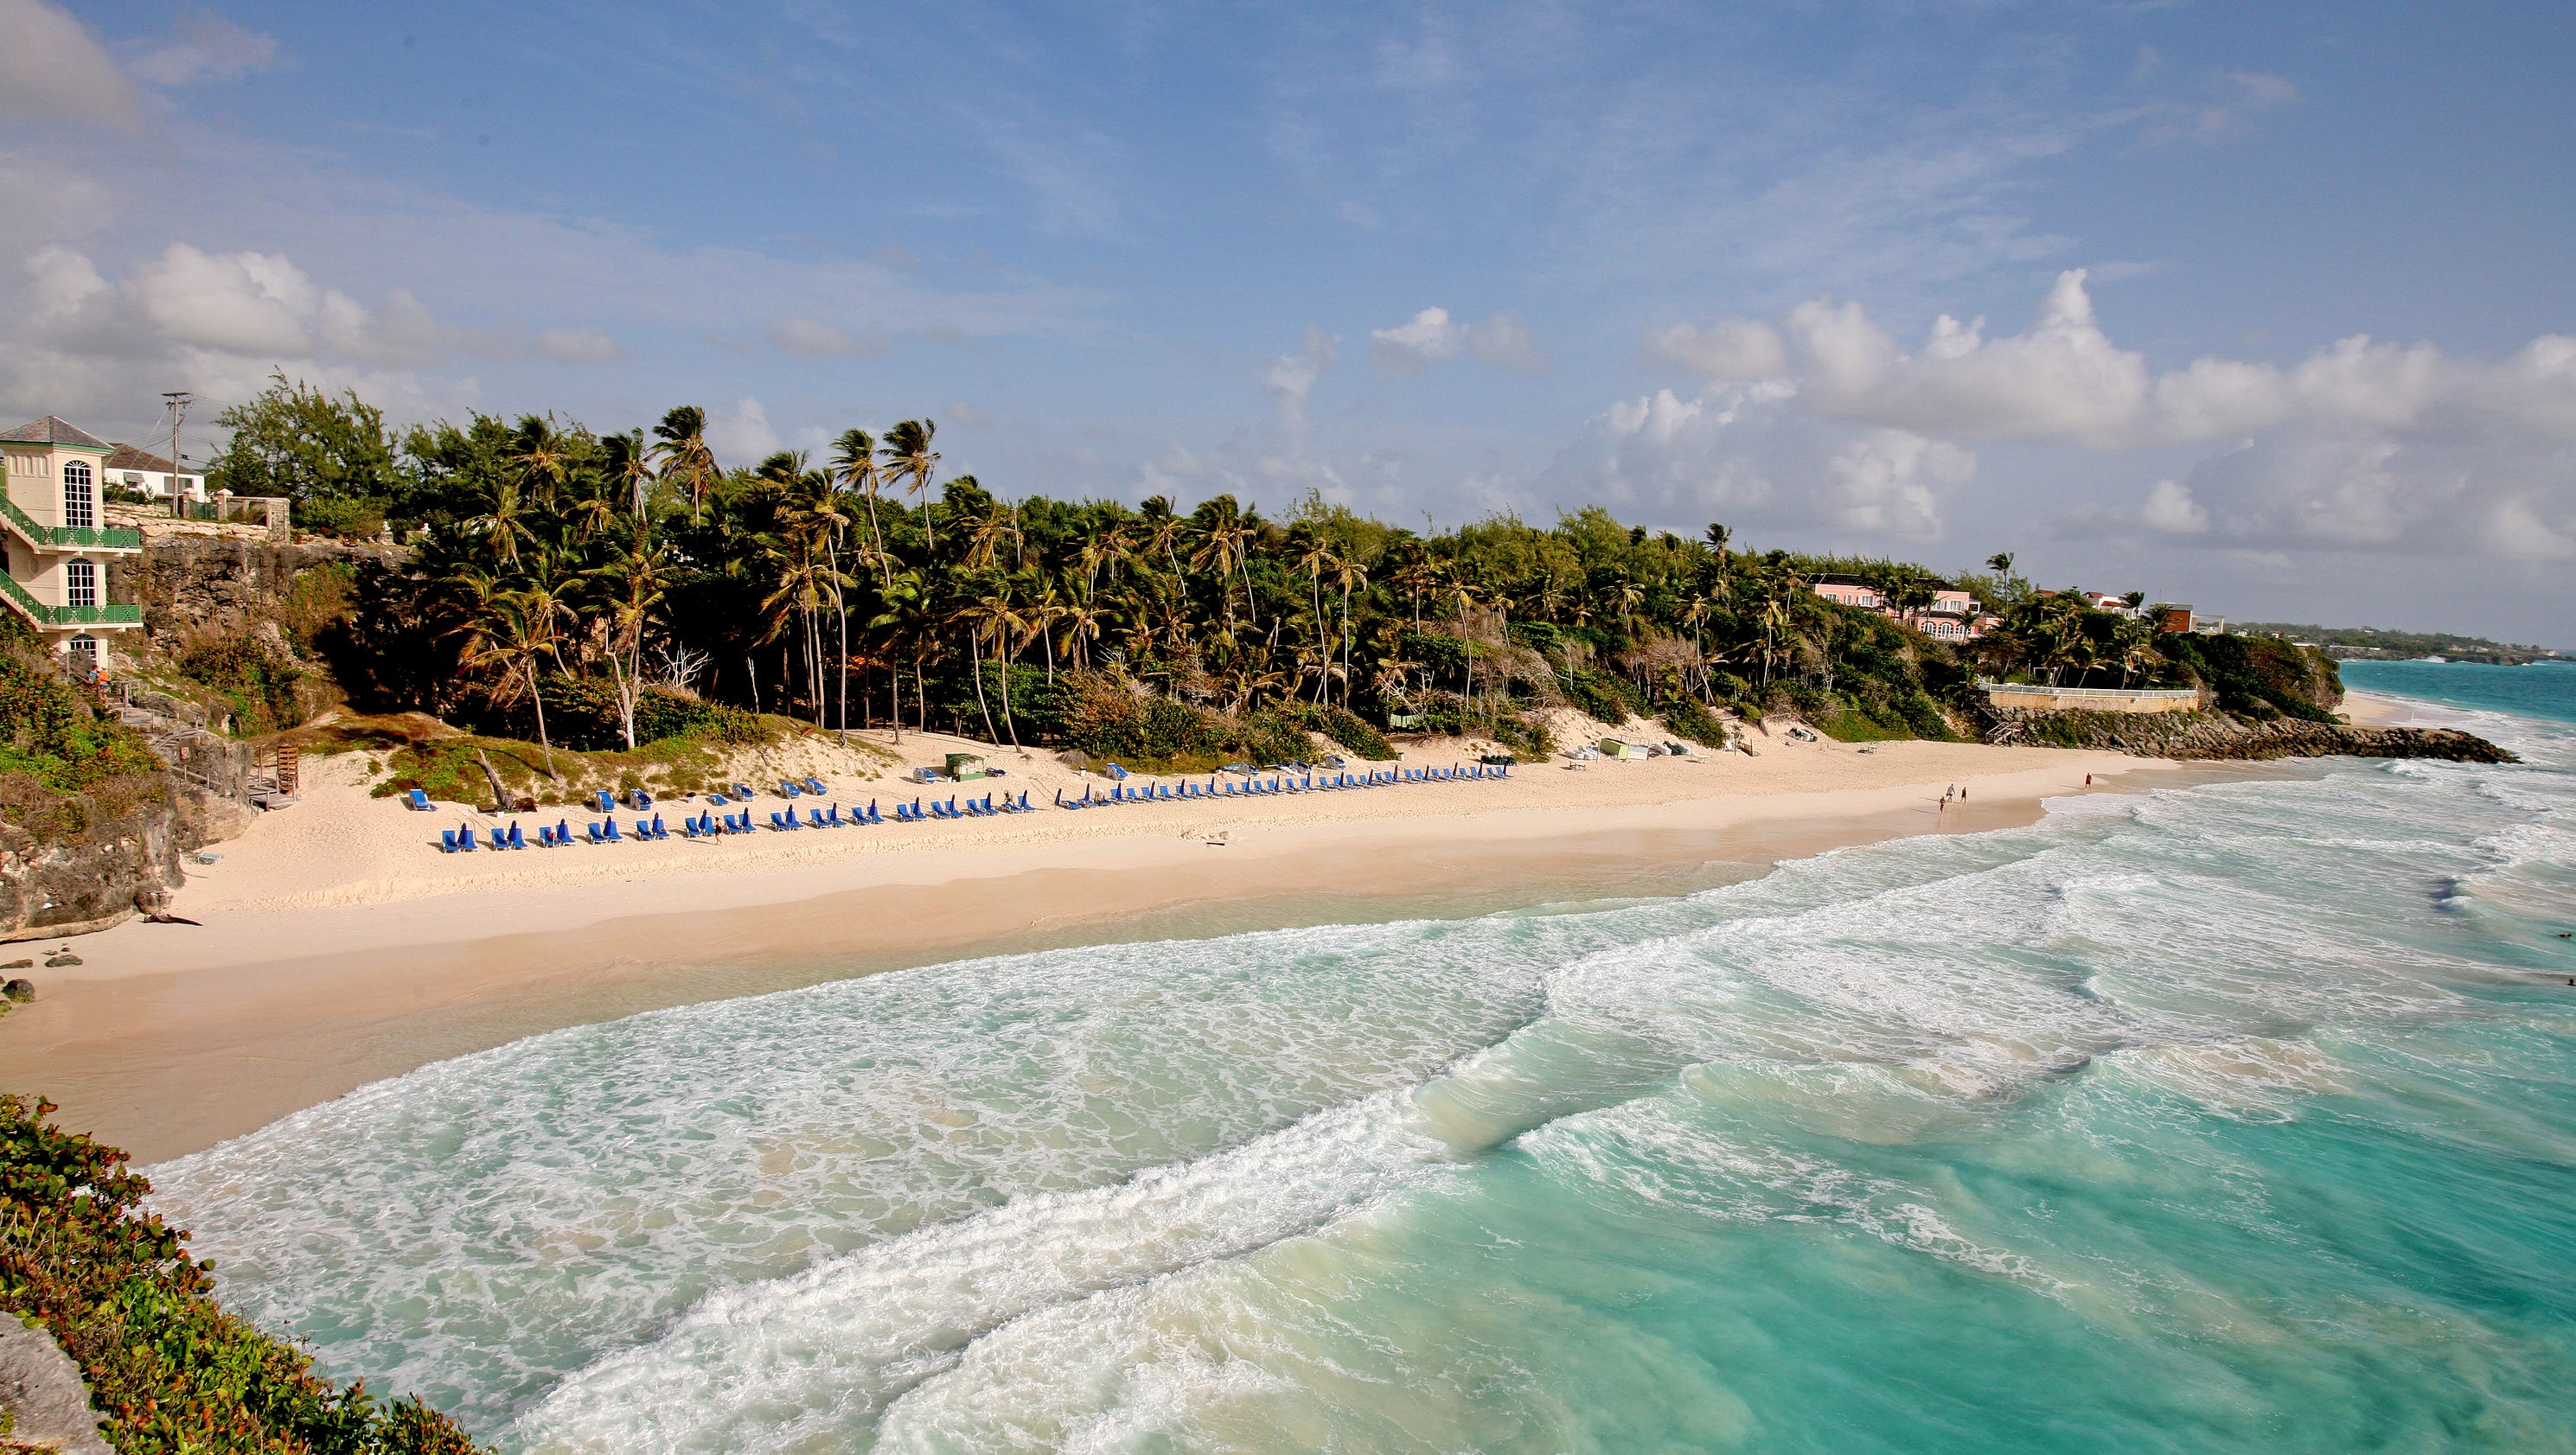 Hot and wet: Sexiest summer beaches in the Caribbean